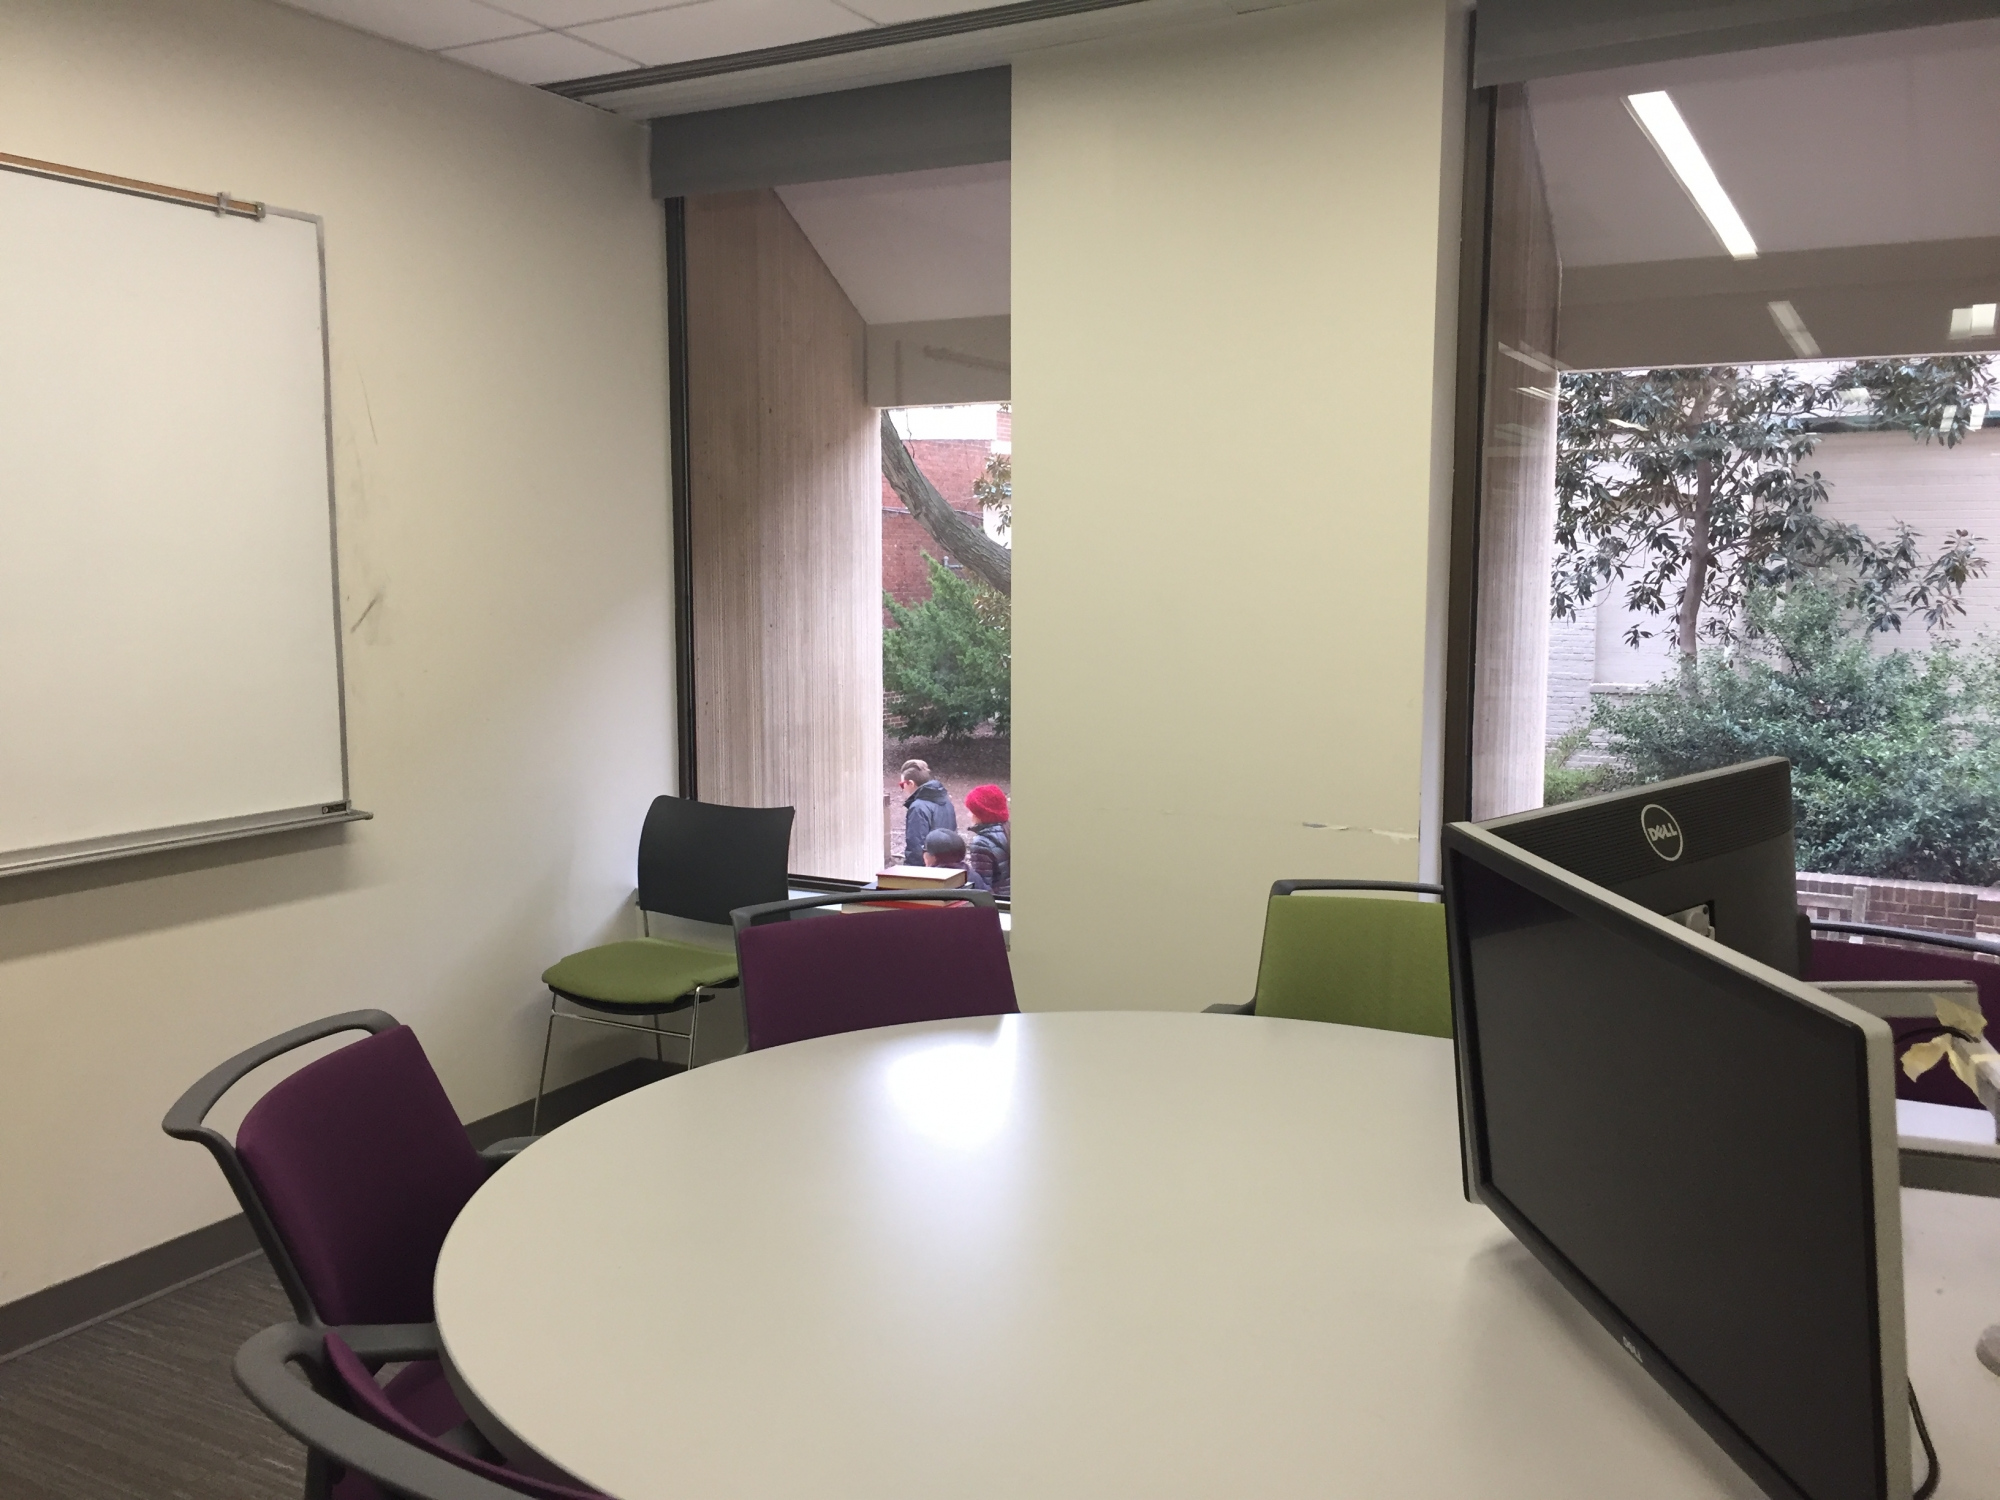 Gelman Library Consultant Room 209 Capacity 5 people